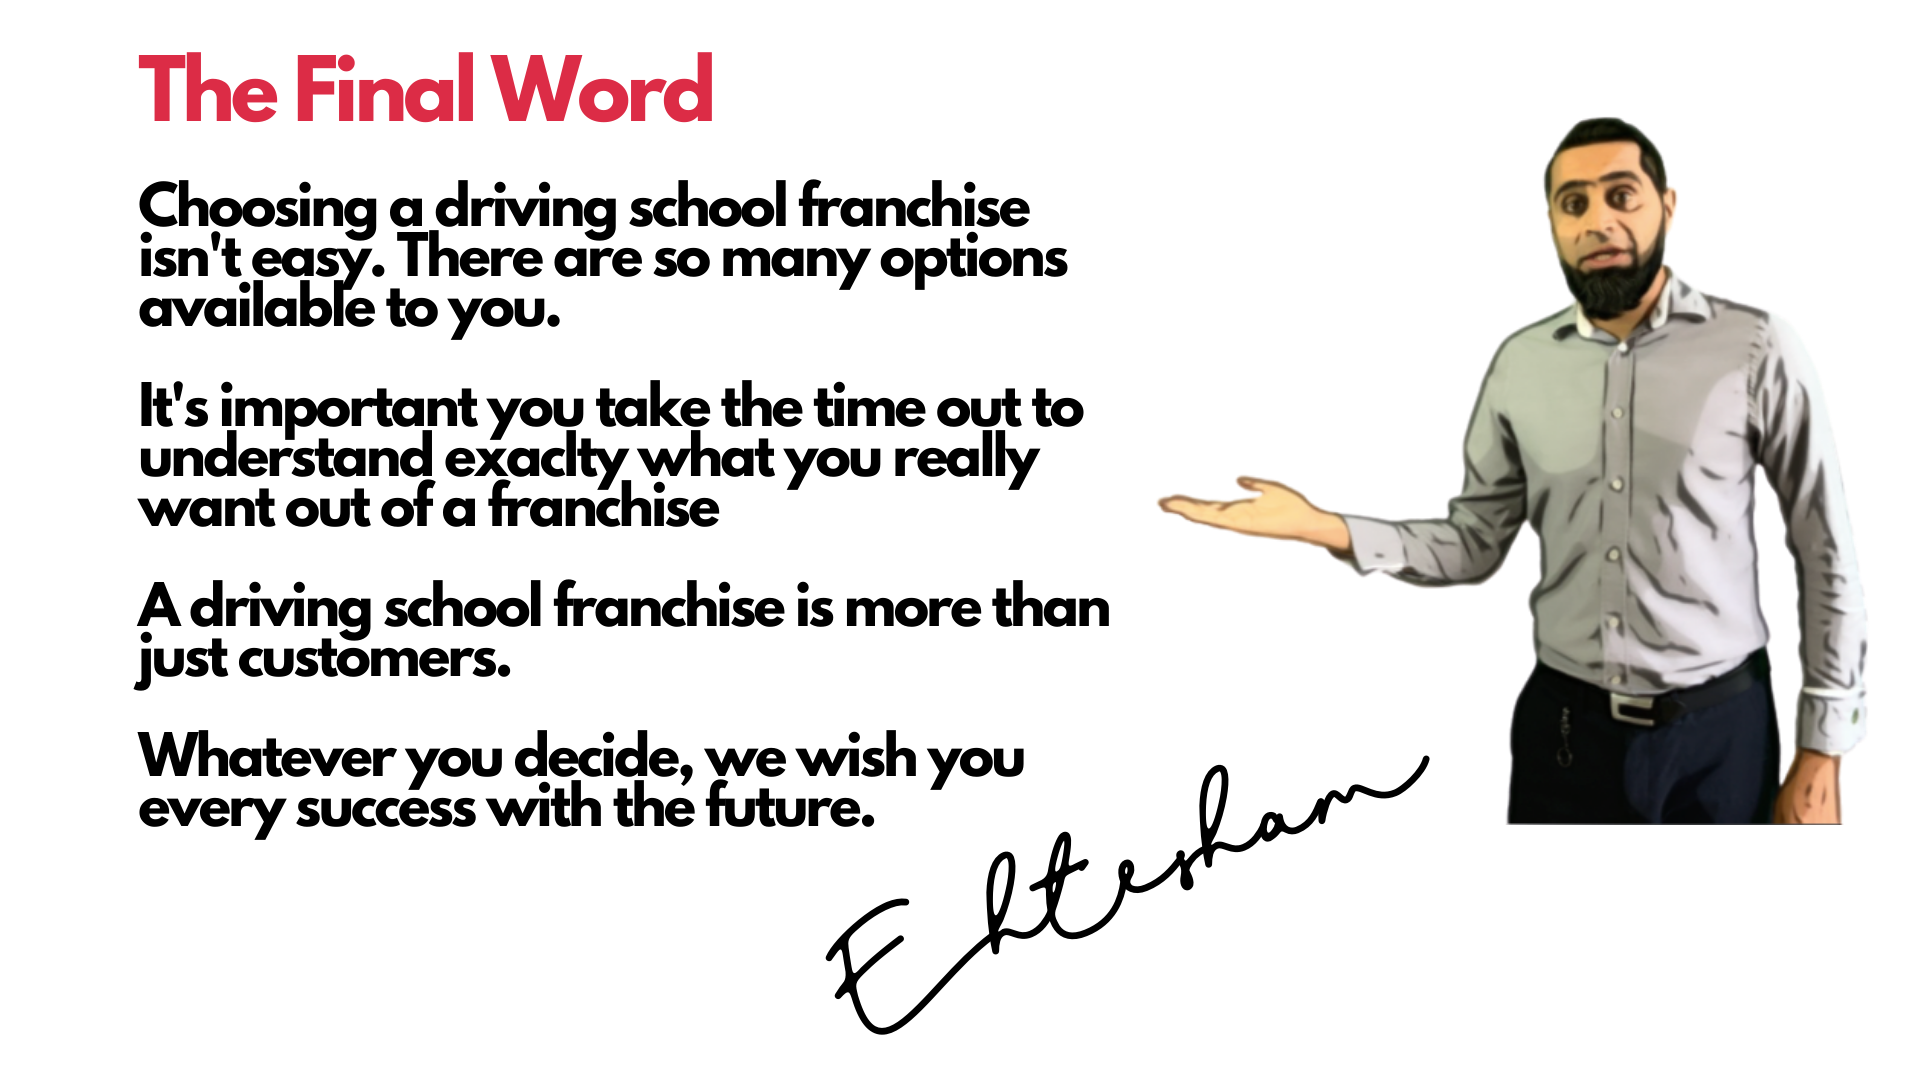 The Final Word - Driving School Franchise